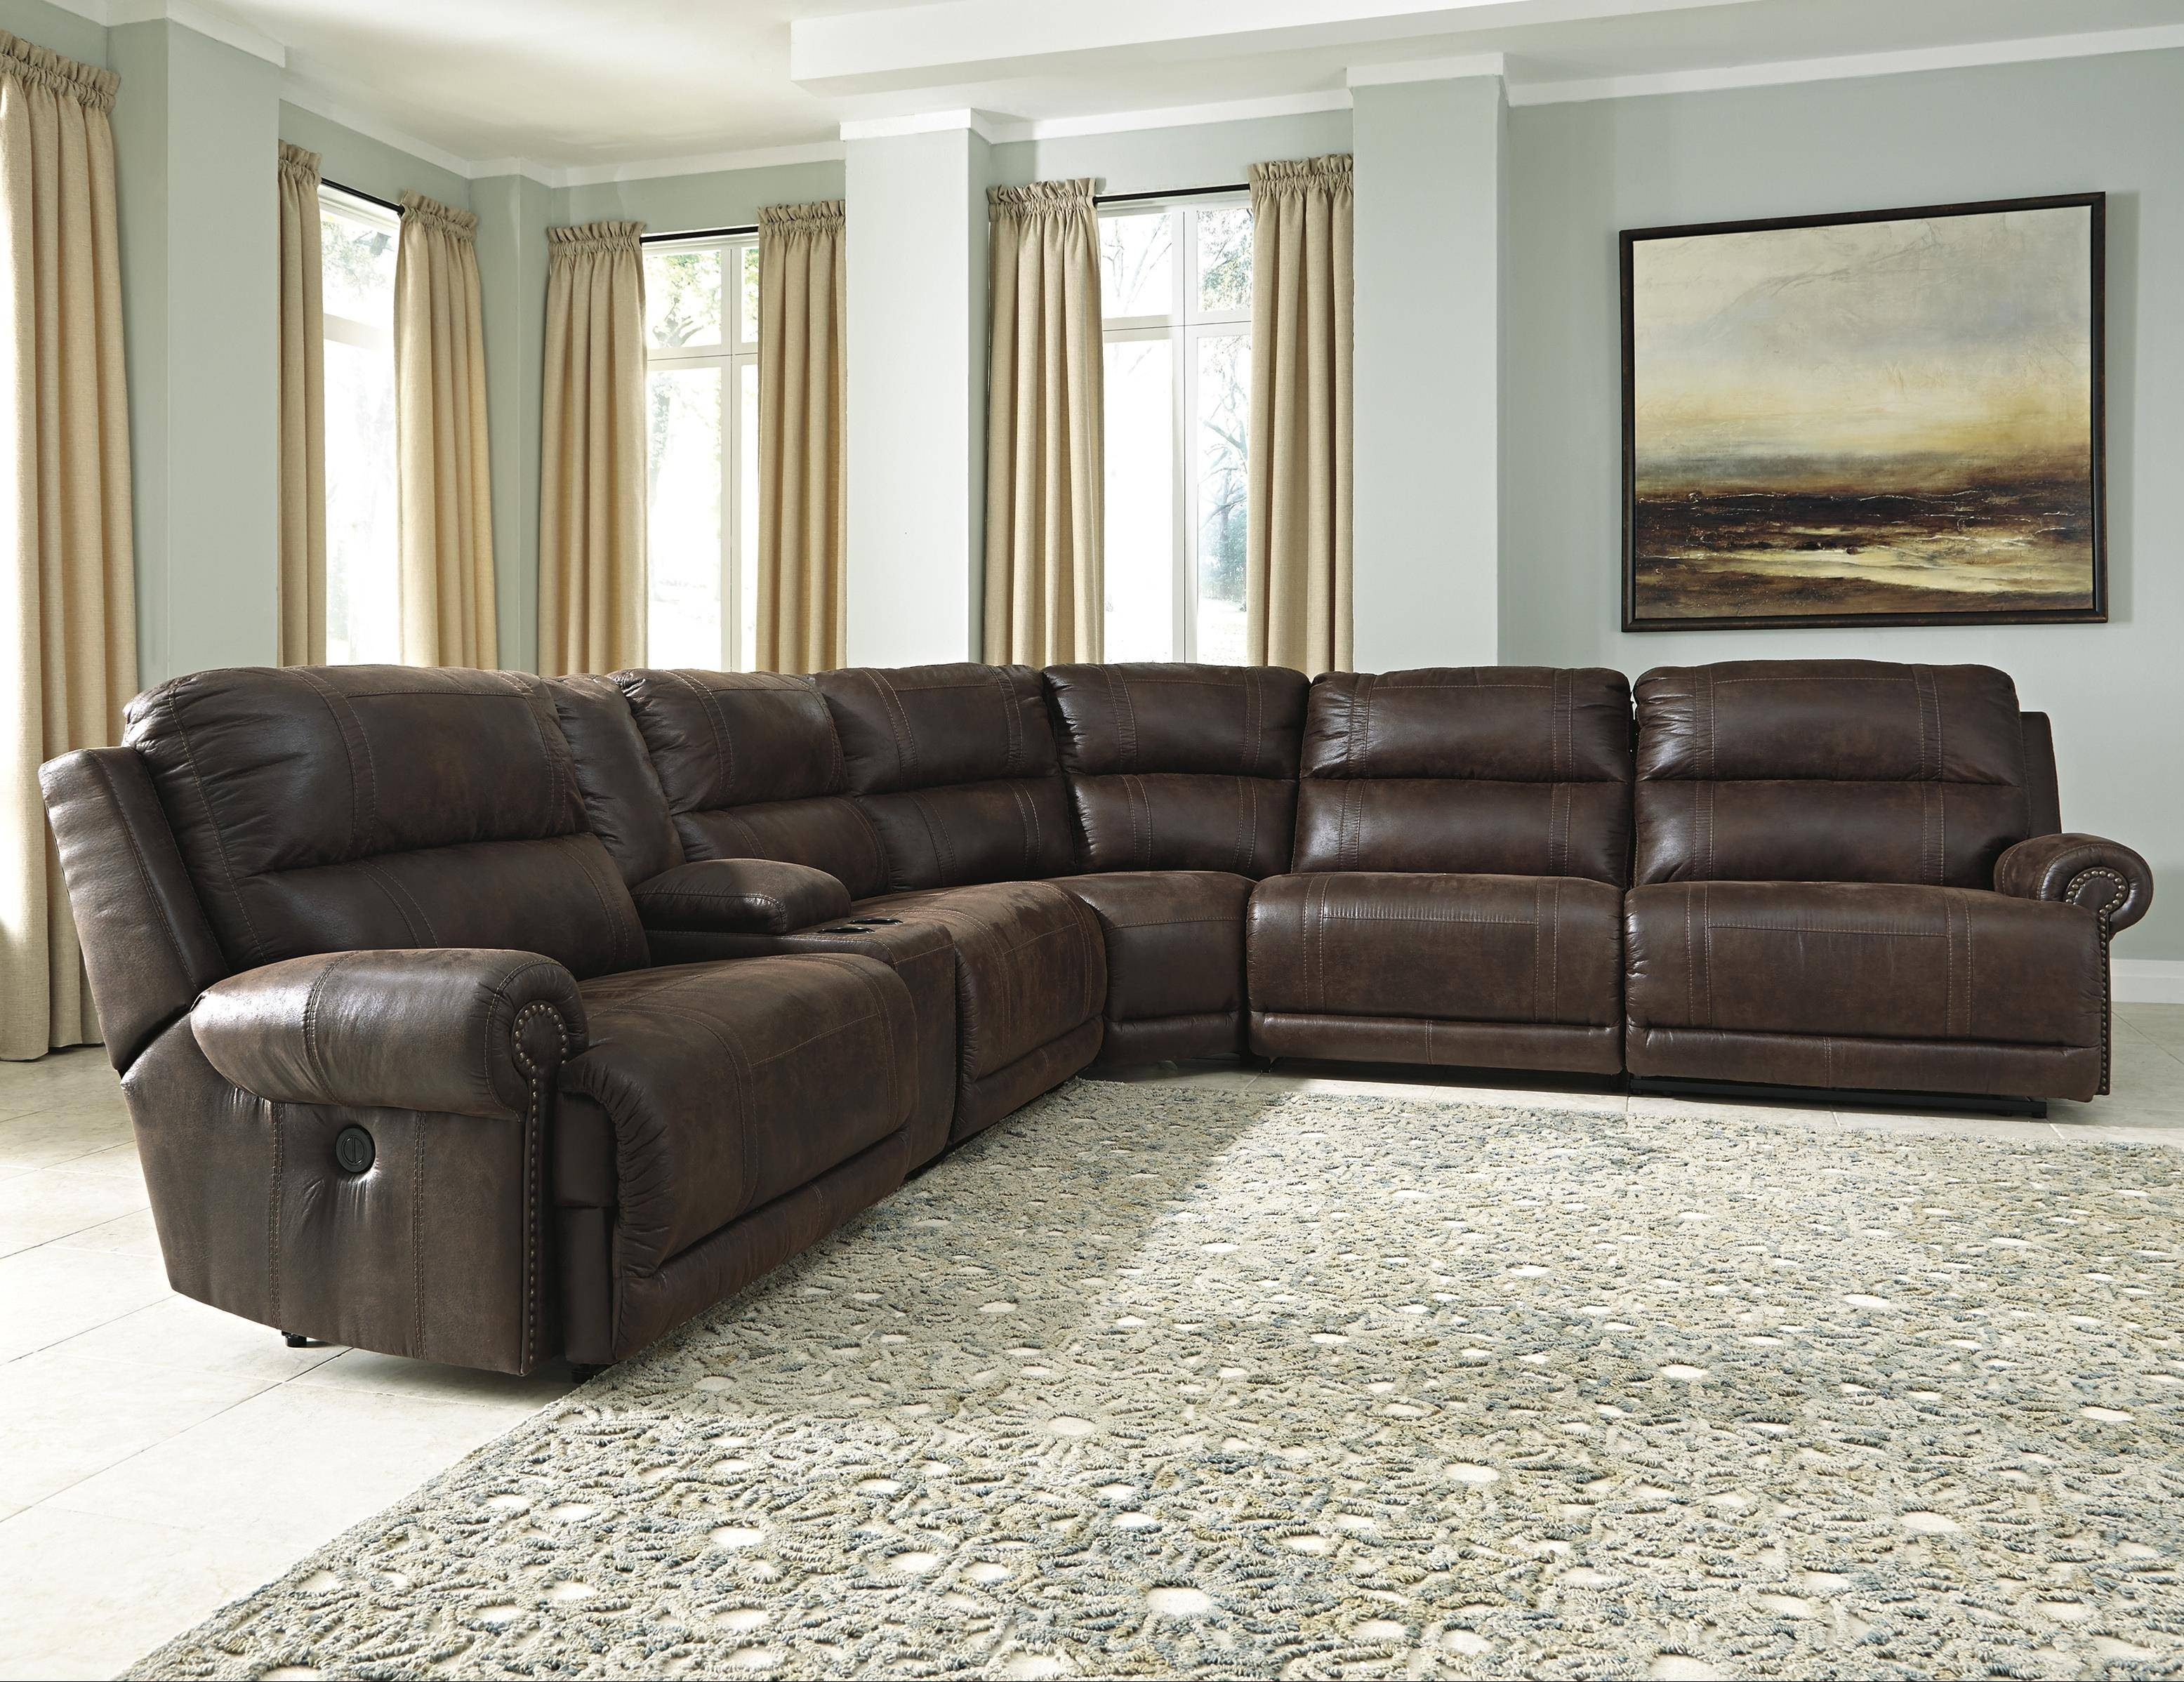 Styleline Luttrell 6-Piece Reclining Sectional With Console - Efo with 6 Piece Leather Sectional Sofa (Image 30 of 30)